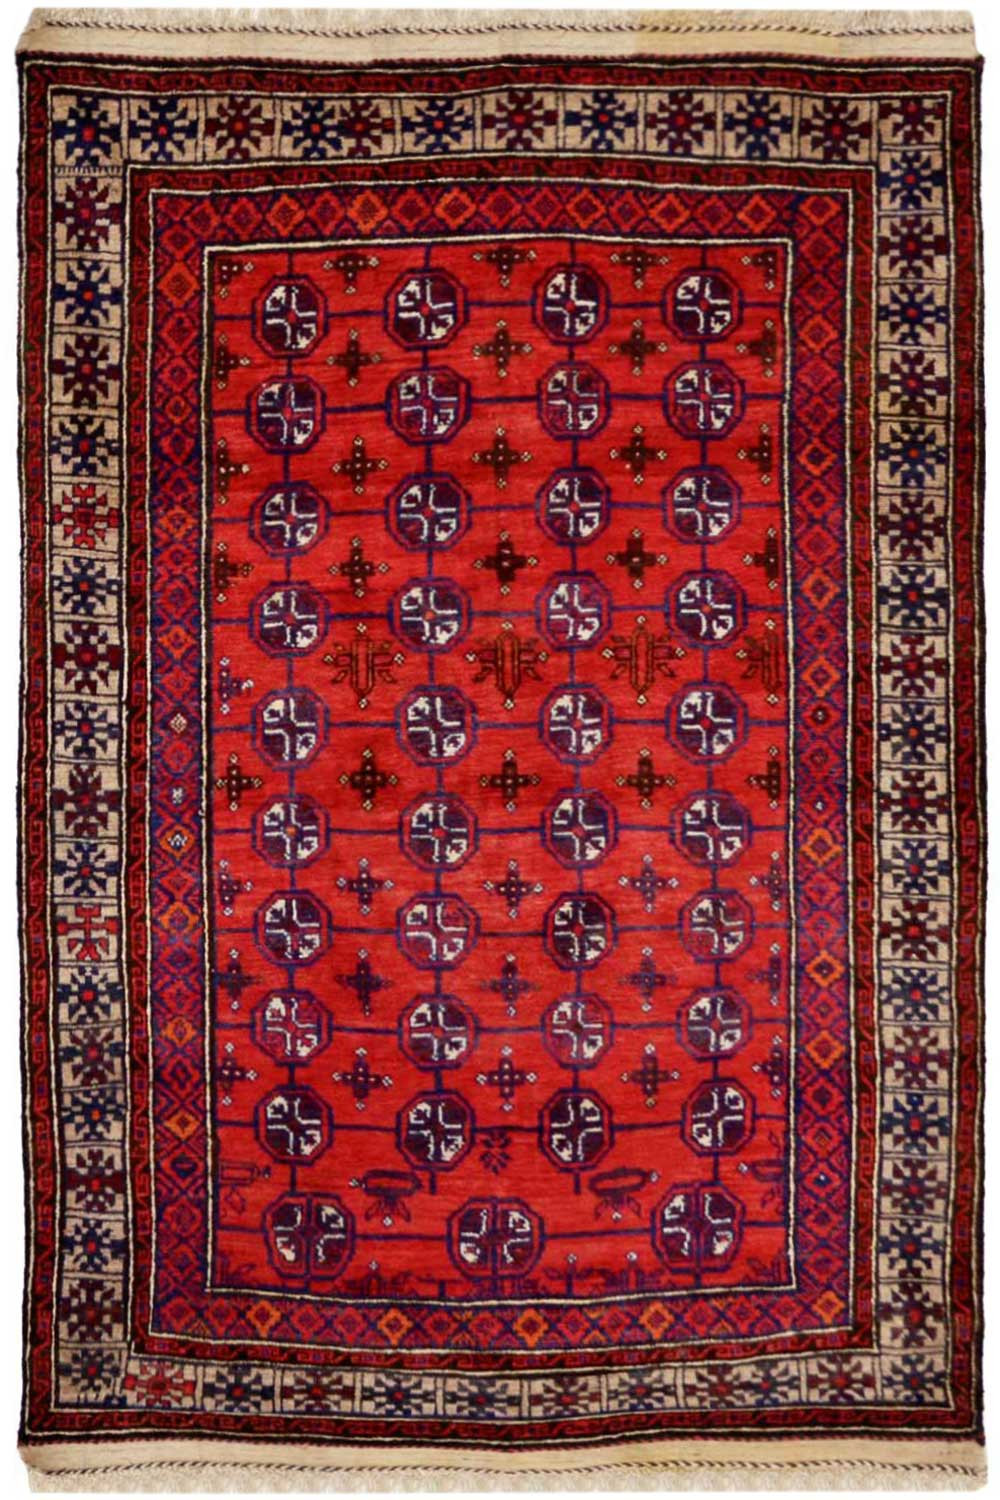 5 X 7 Ivory Rouge Bokhara Afghan Wool Rugs Online At Low Price